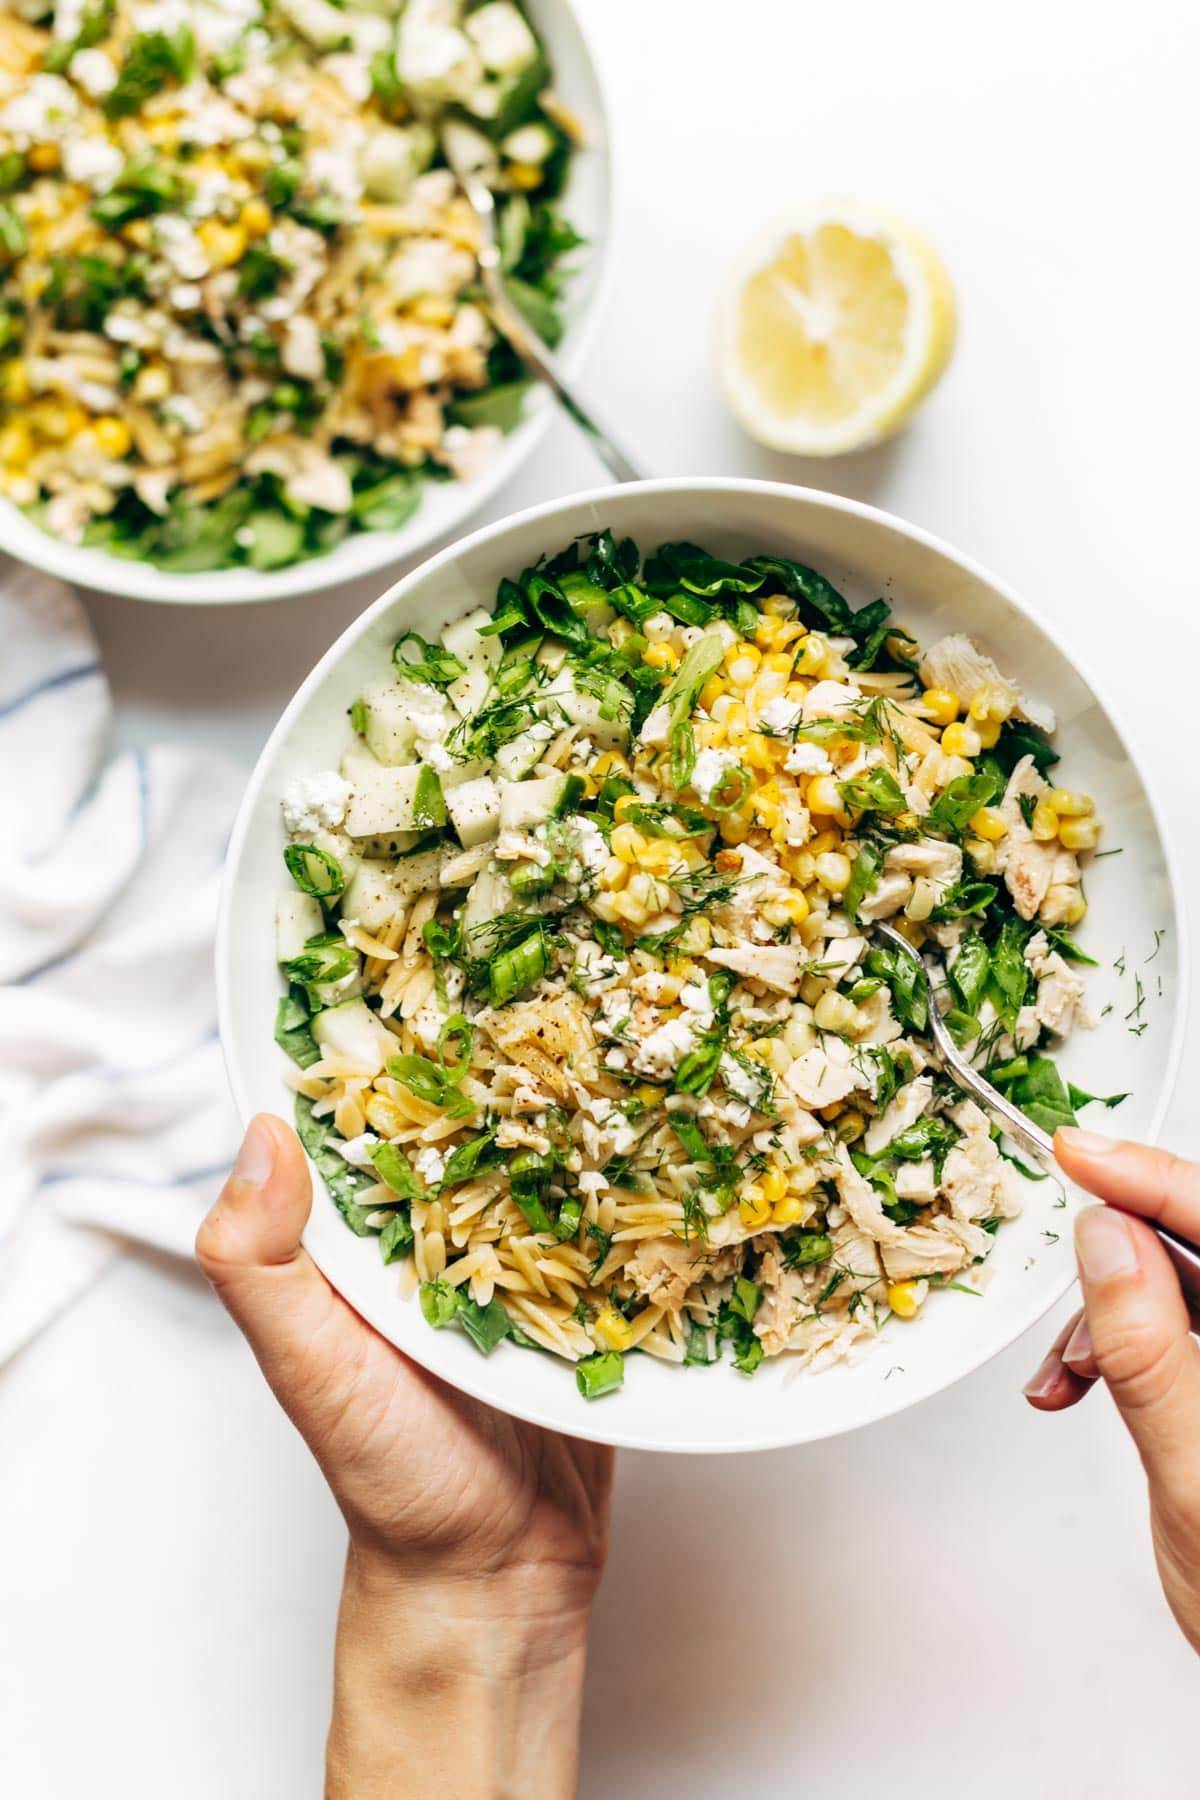 Hands holding Orzo Summer Salad with a fork.